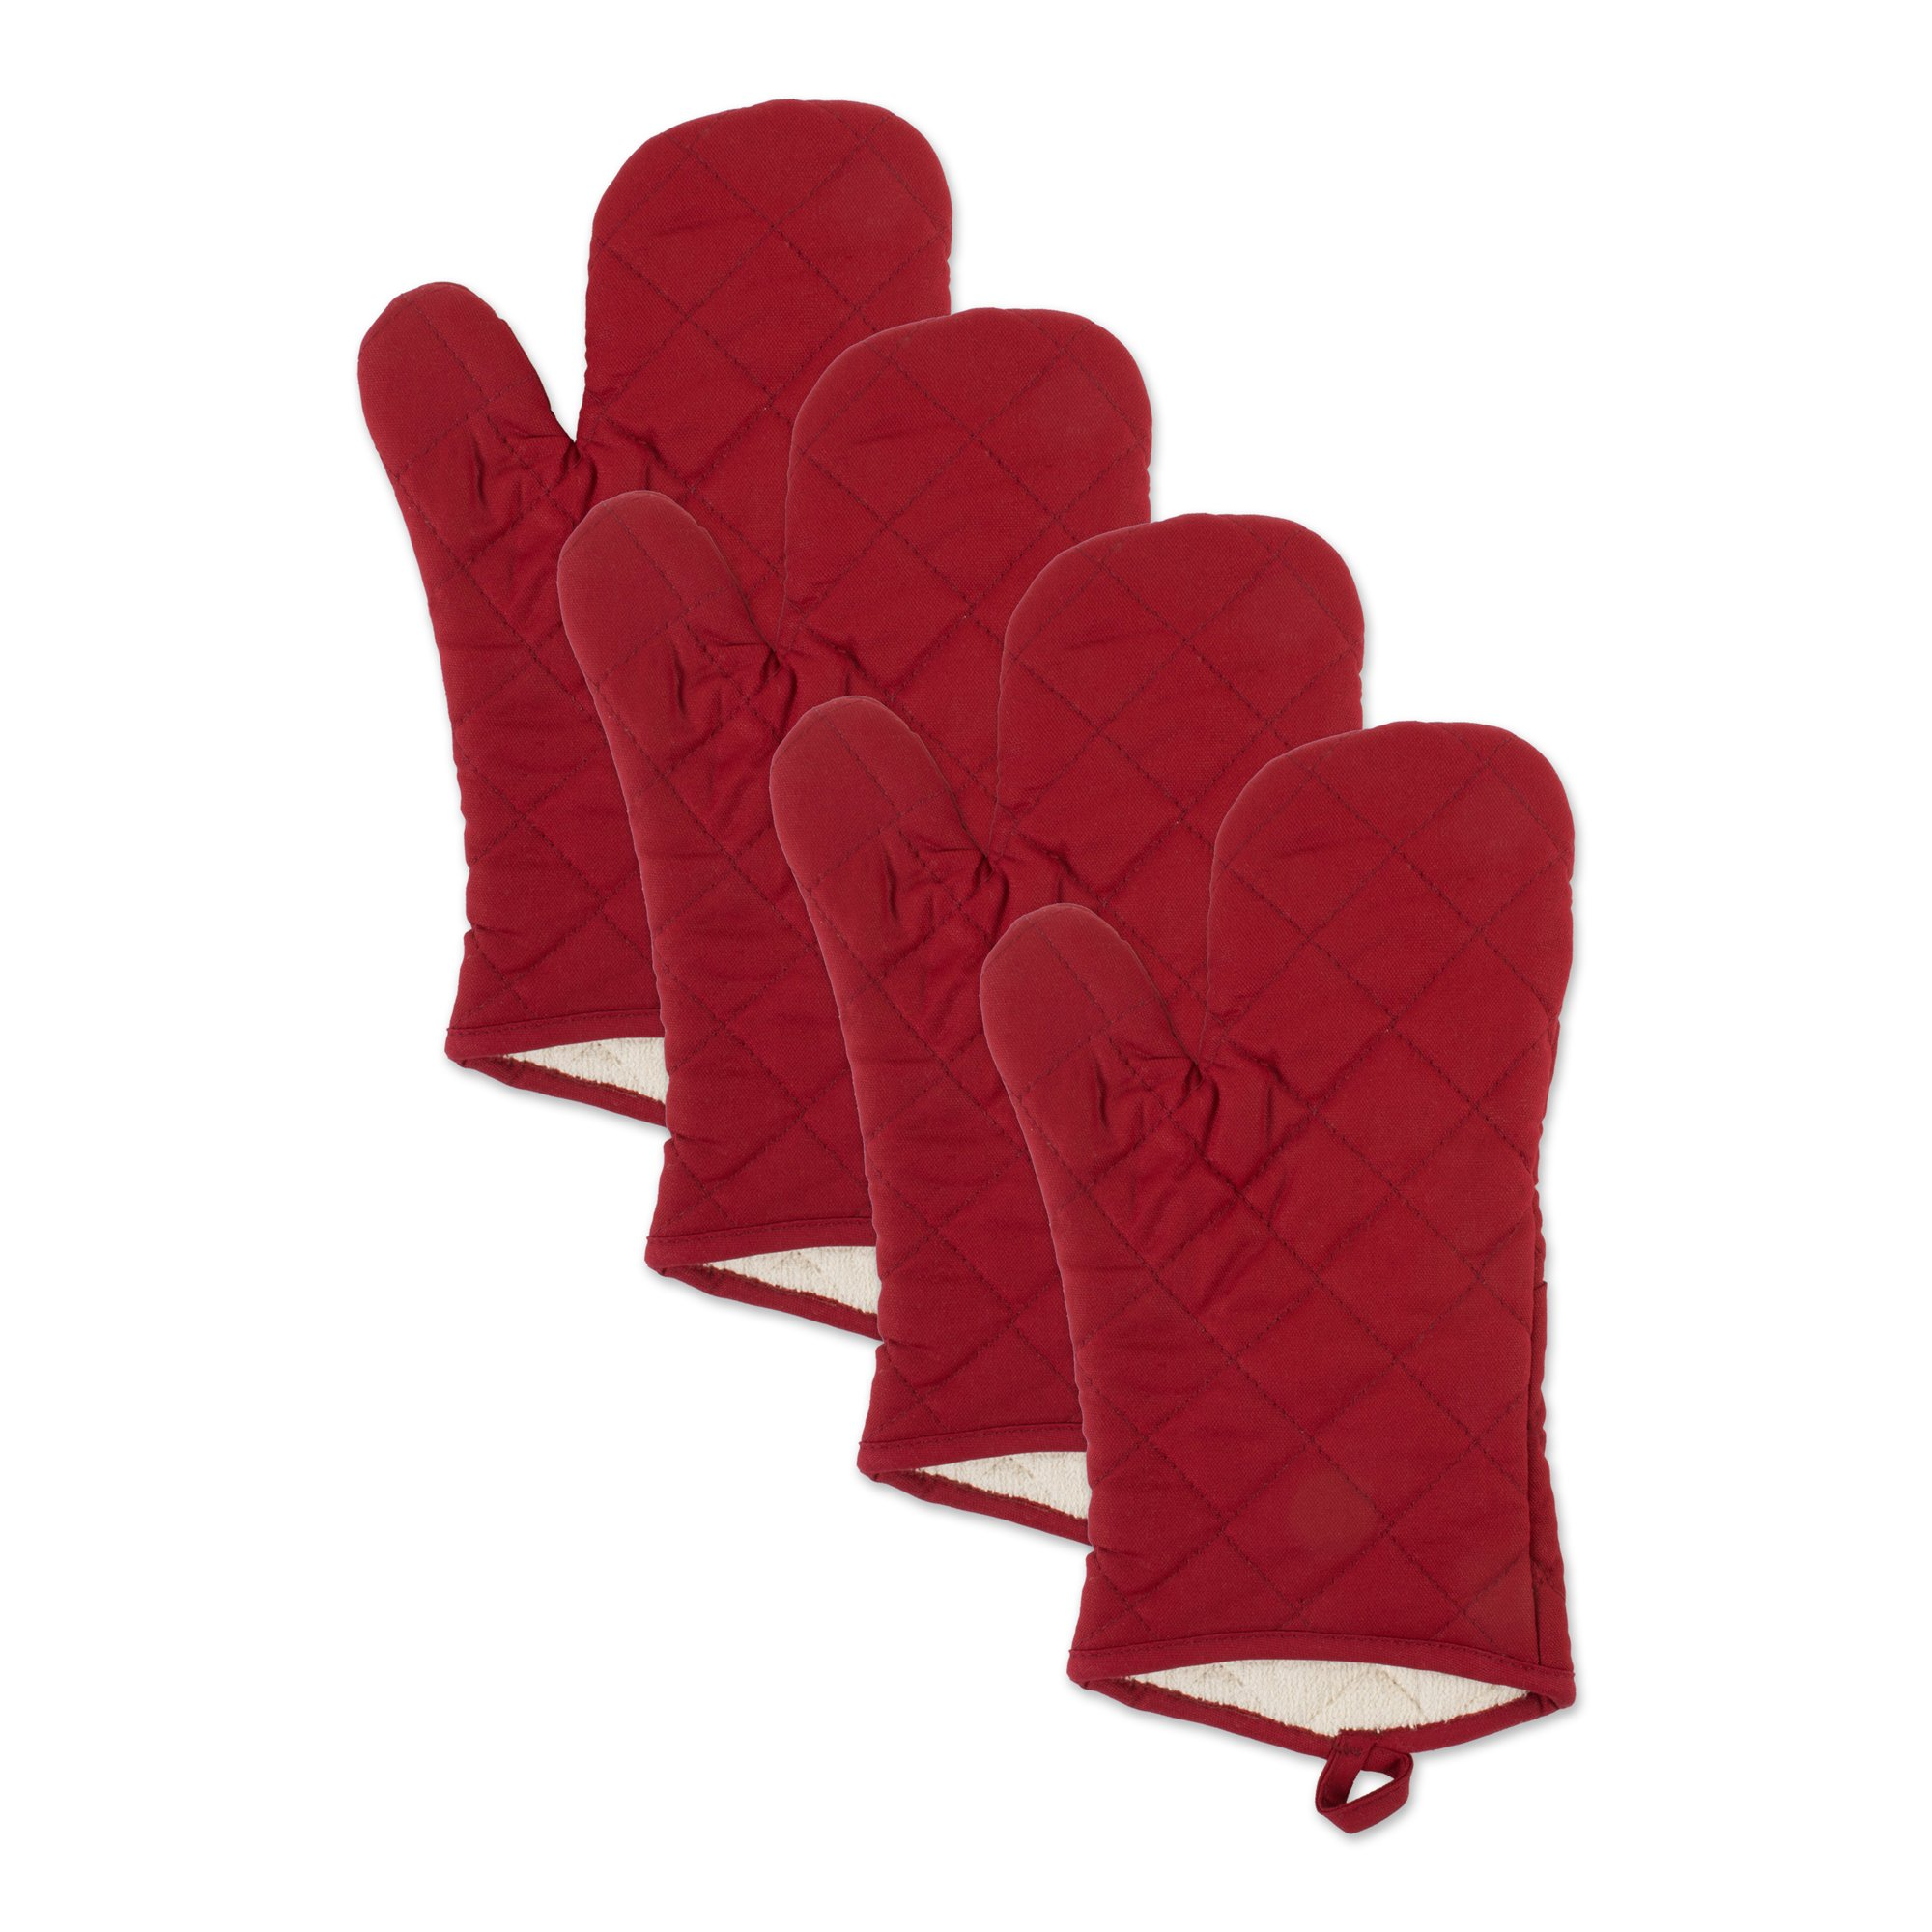 J&M Home Fashions 70309A Dishcloth, Red Oven Mitt